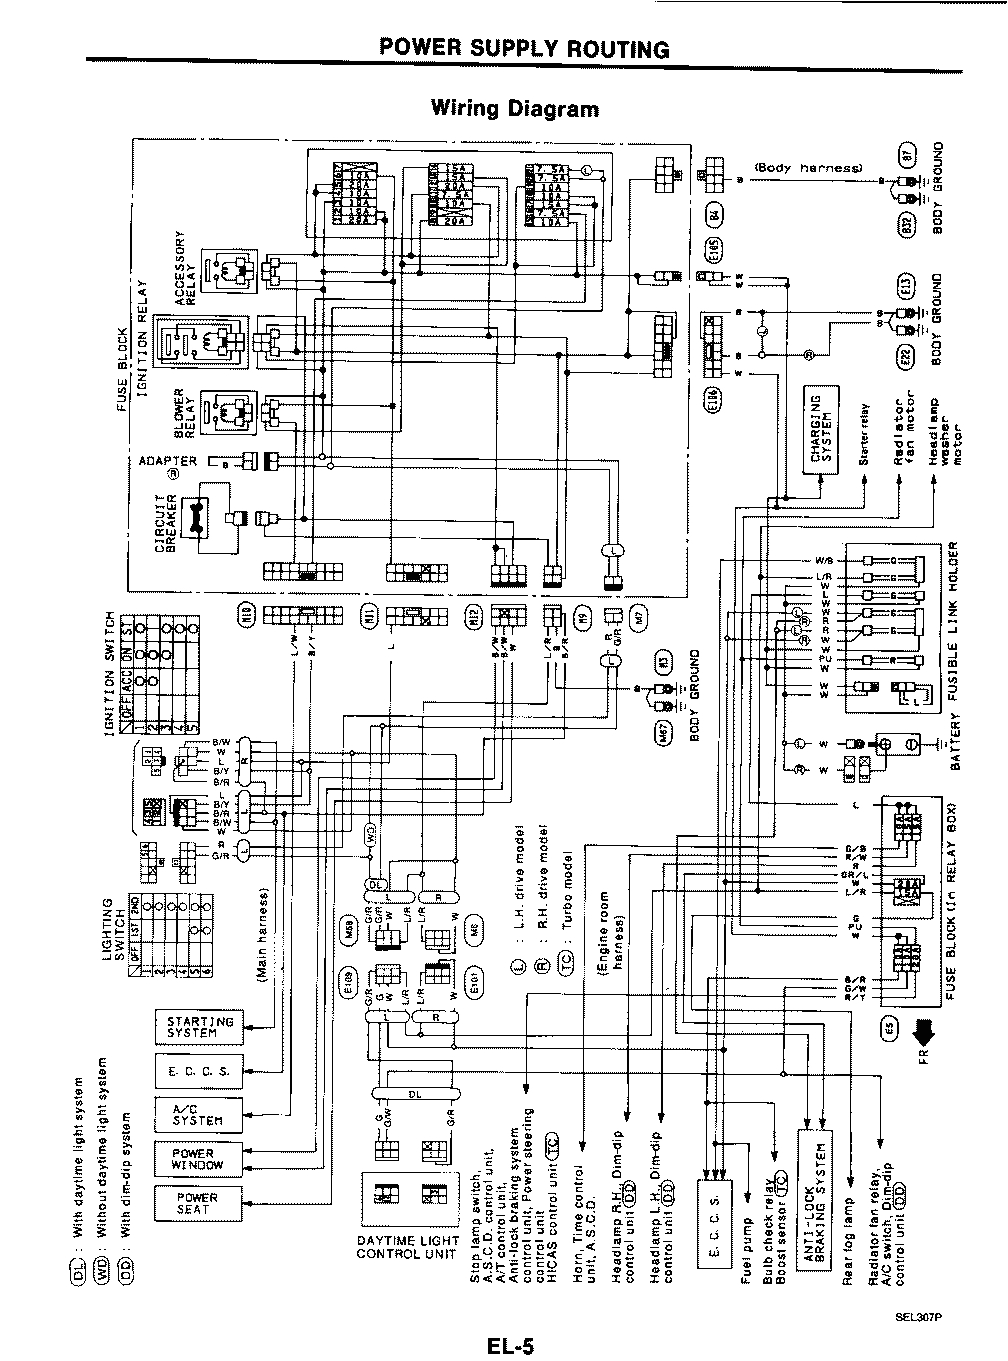 2007 Nissan Frontier Stereo Wiring Diagram A Diagram Baseda Qg18 Nissan Wiring Diagrams Completed